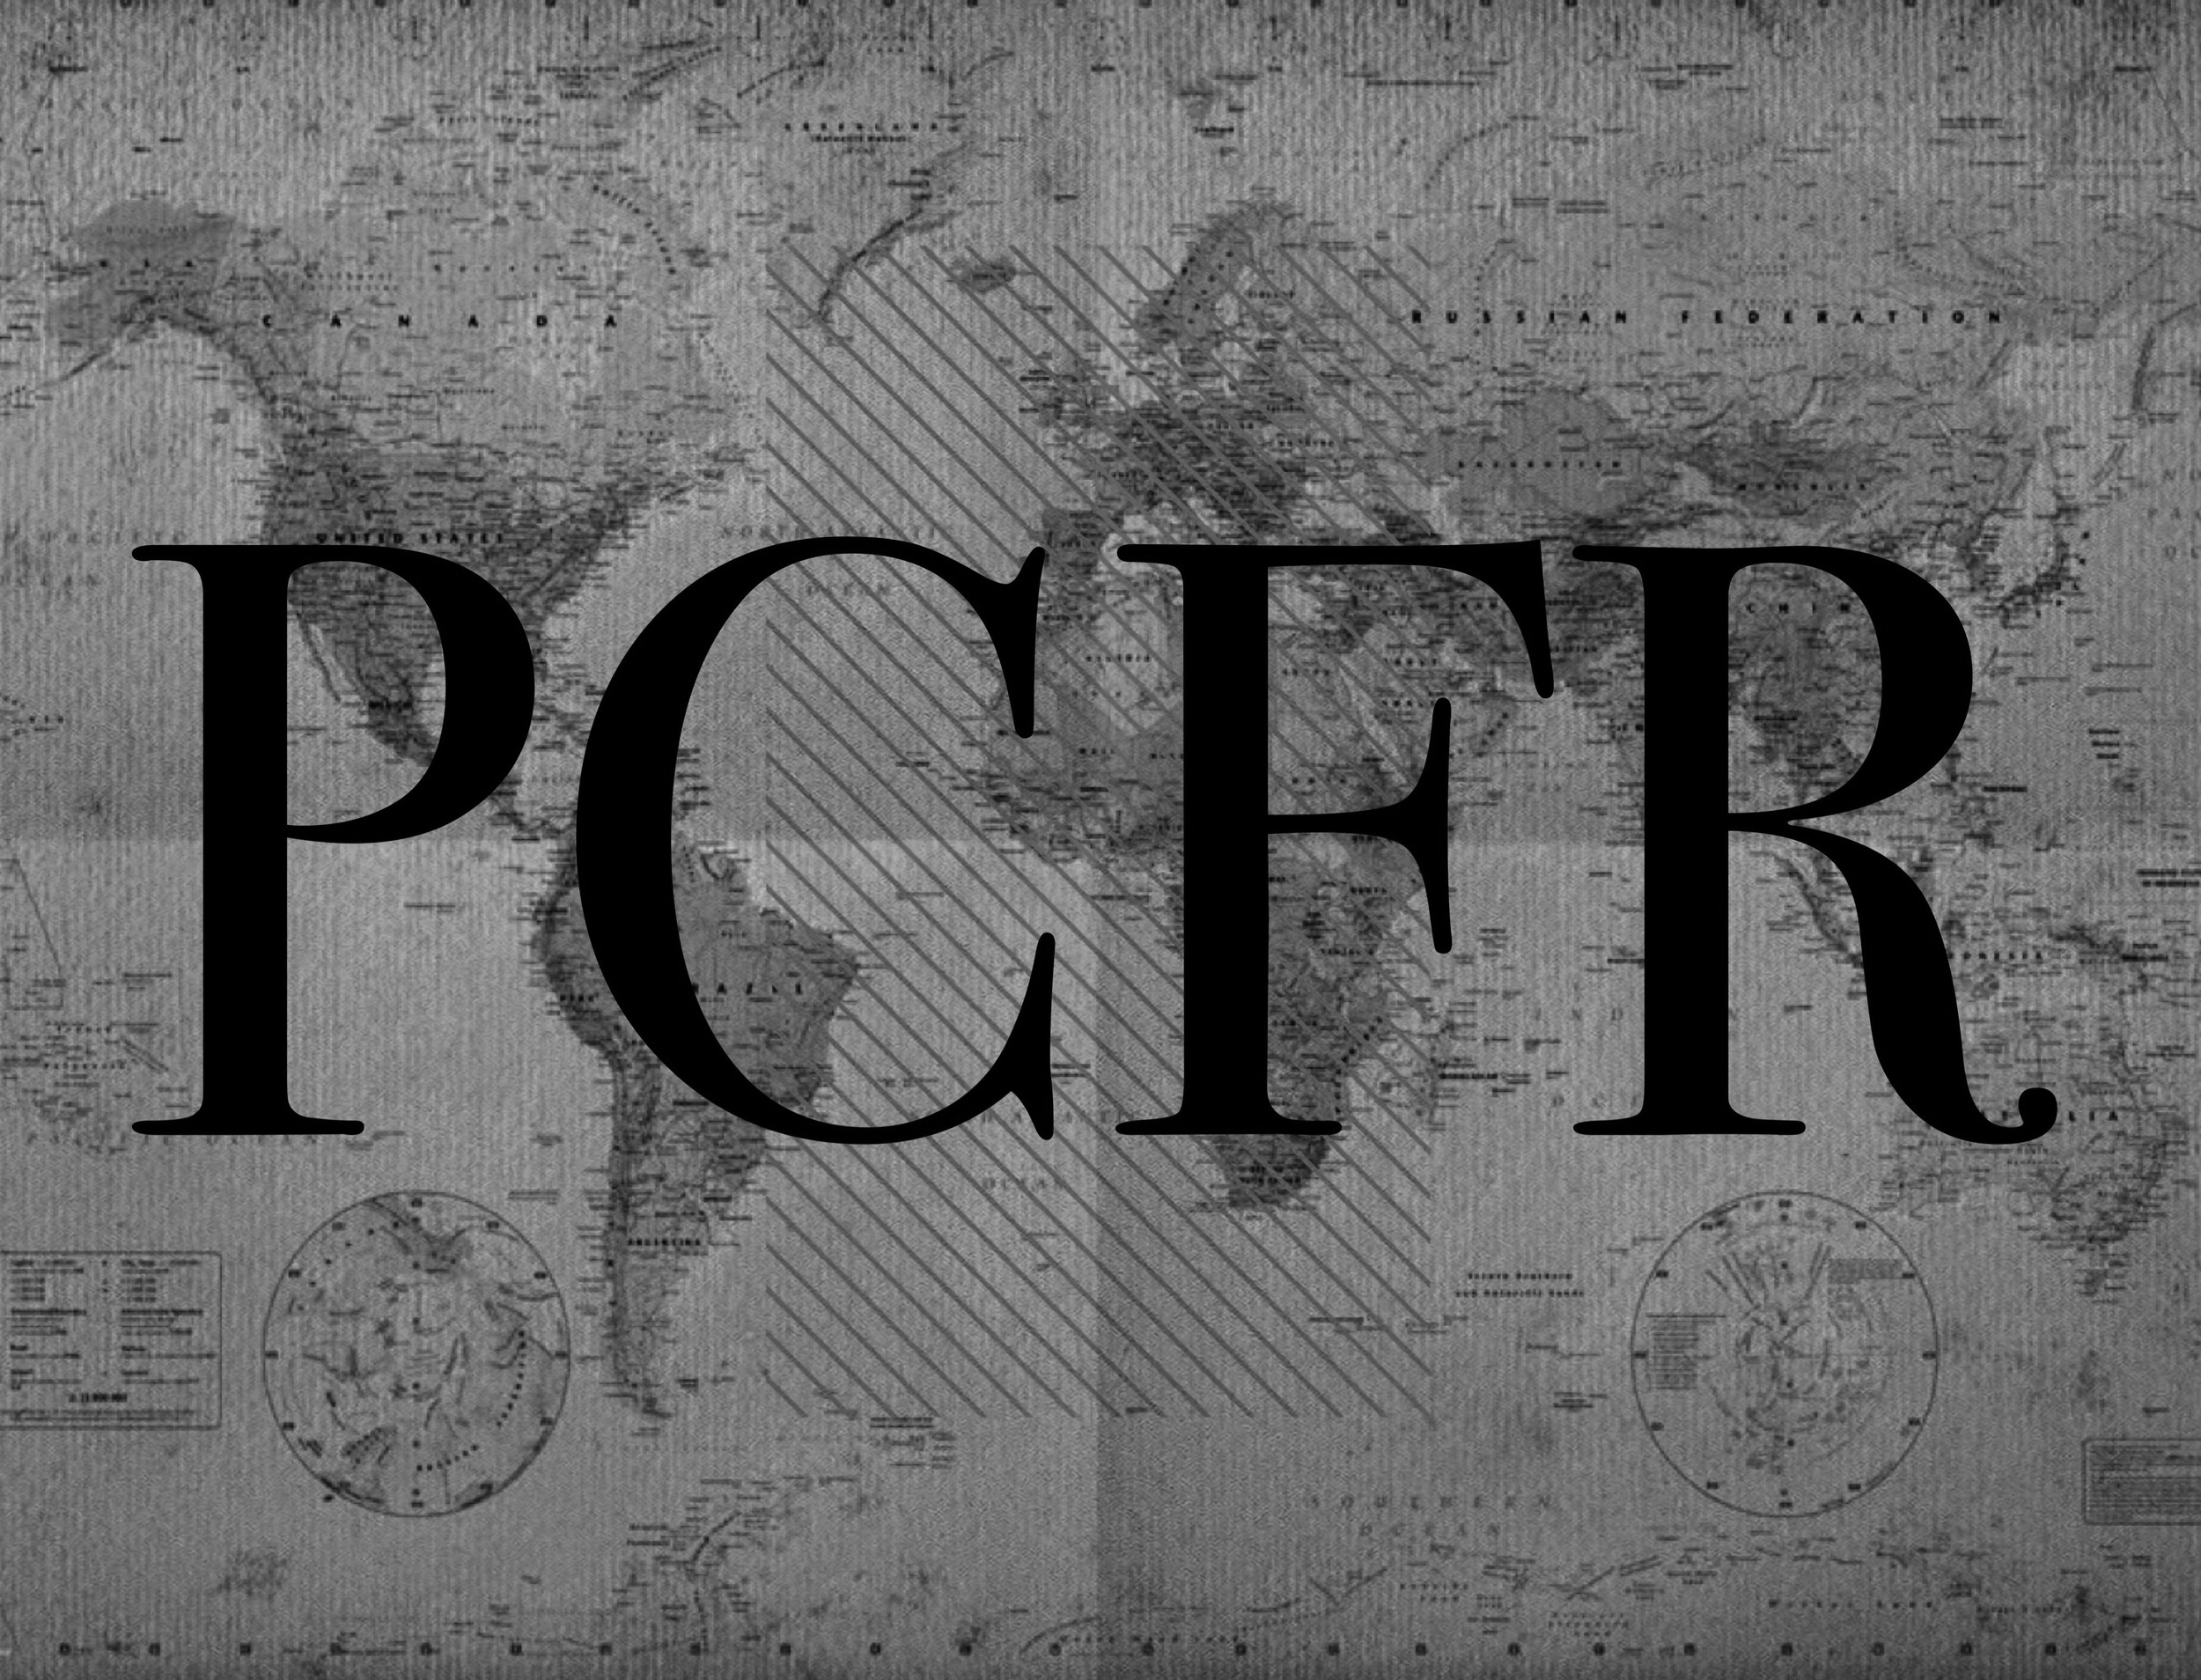 The Providence Committee on Foreign Relations